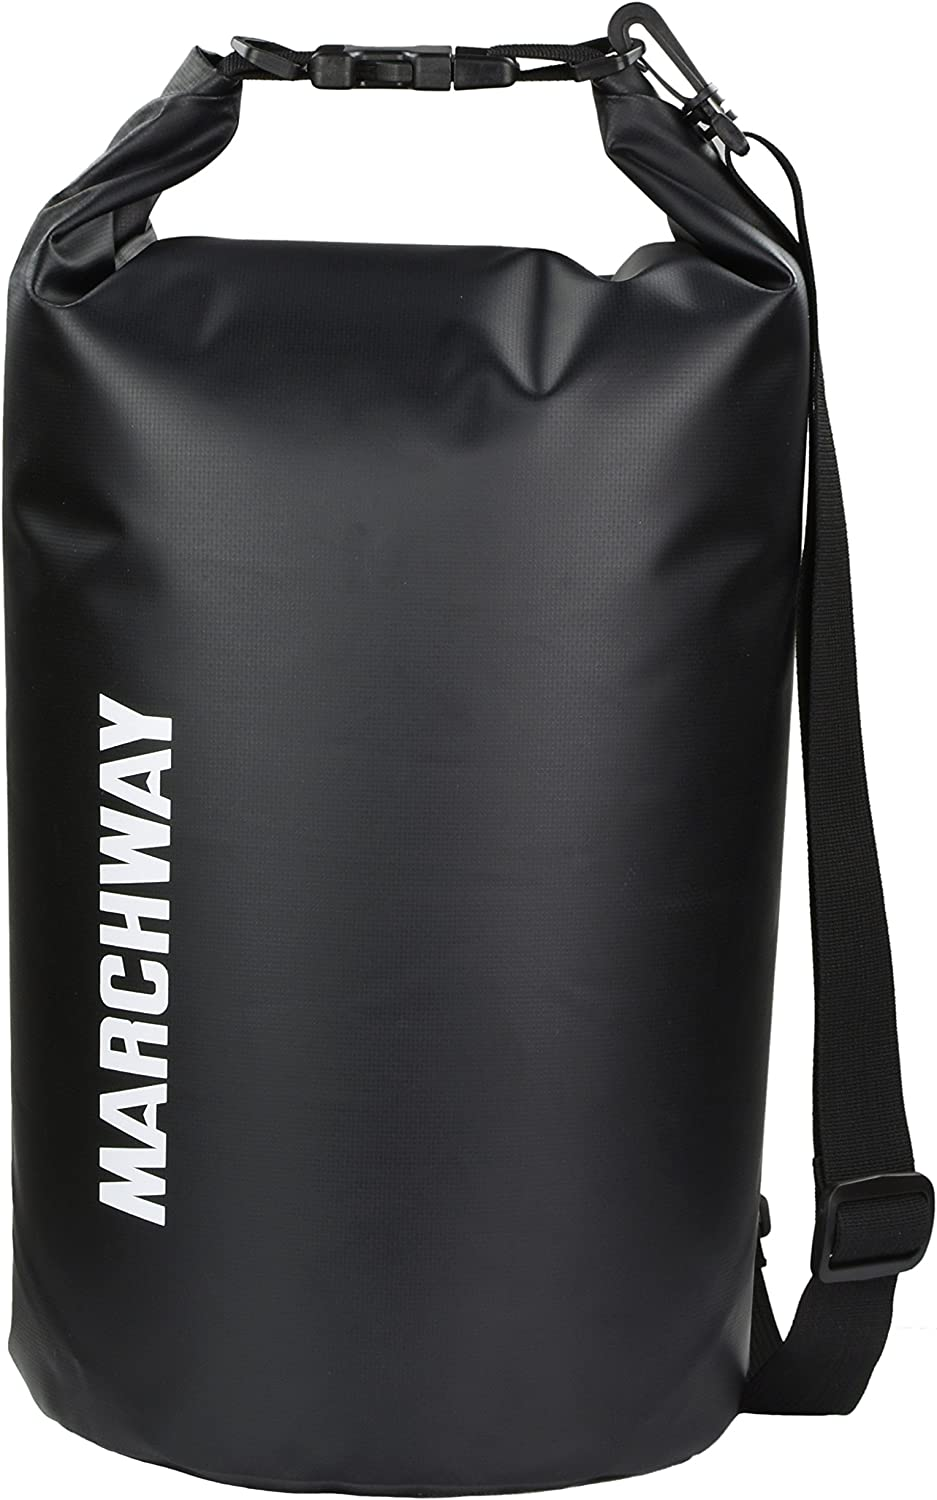 Amazon Com Marchway Floating Waterproof Dry Bag 5l 10l 20l 30l 40l Roll Top Sack Keeps Gear Dry For Kayaking Rafting Boating Swimming Camping Hiking Beach Fishing Clothing